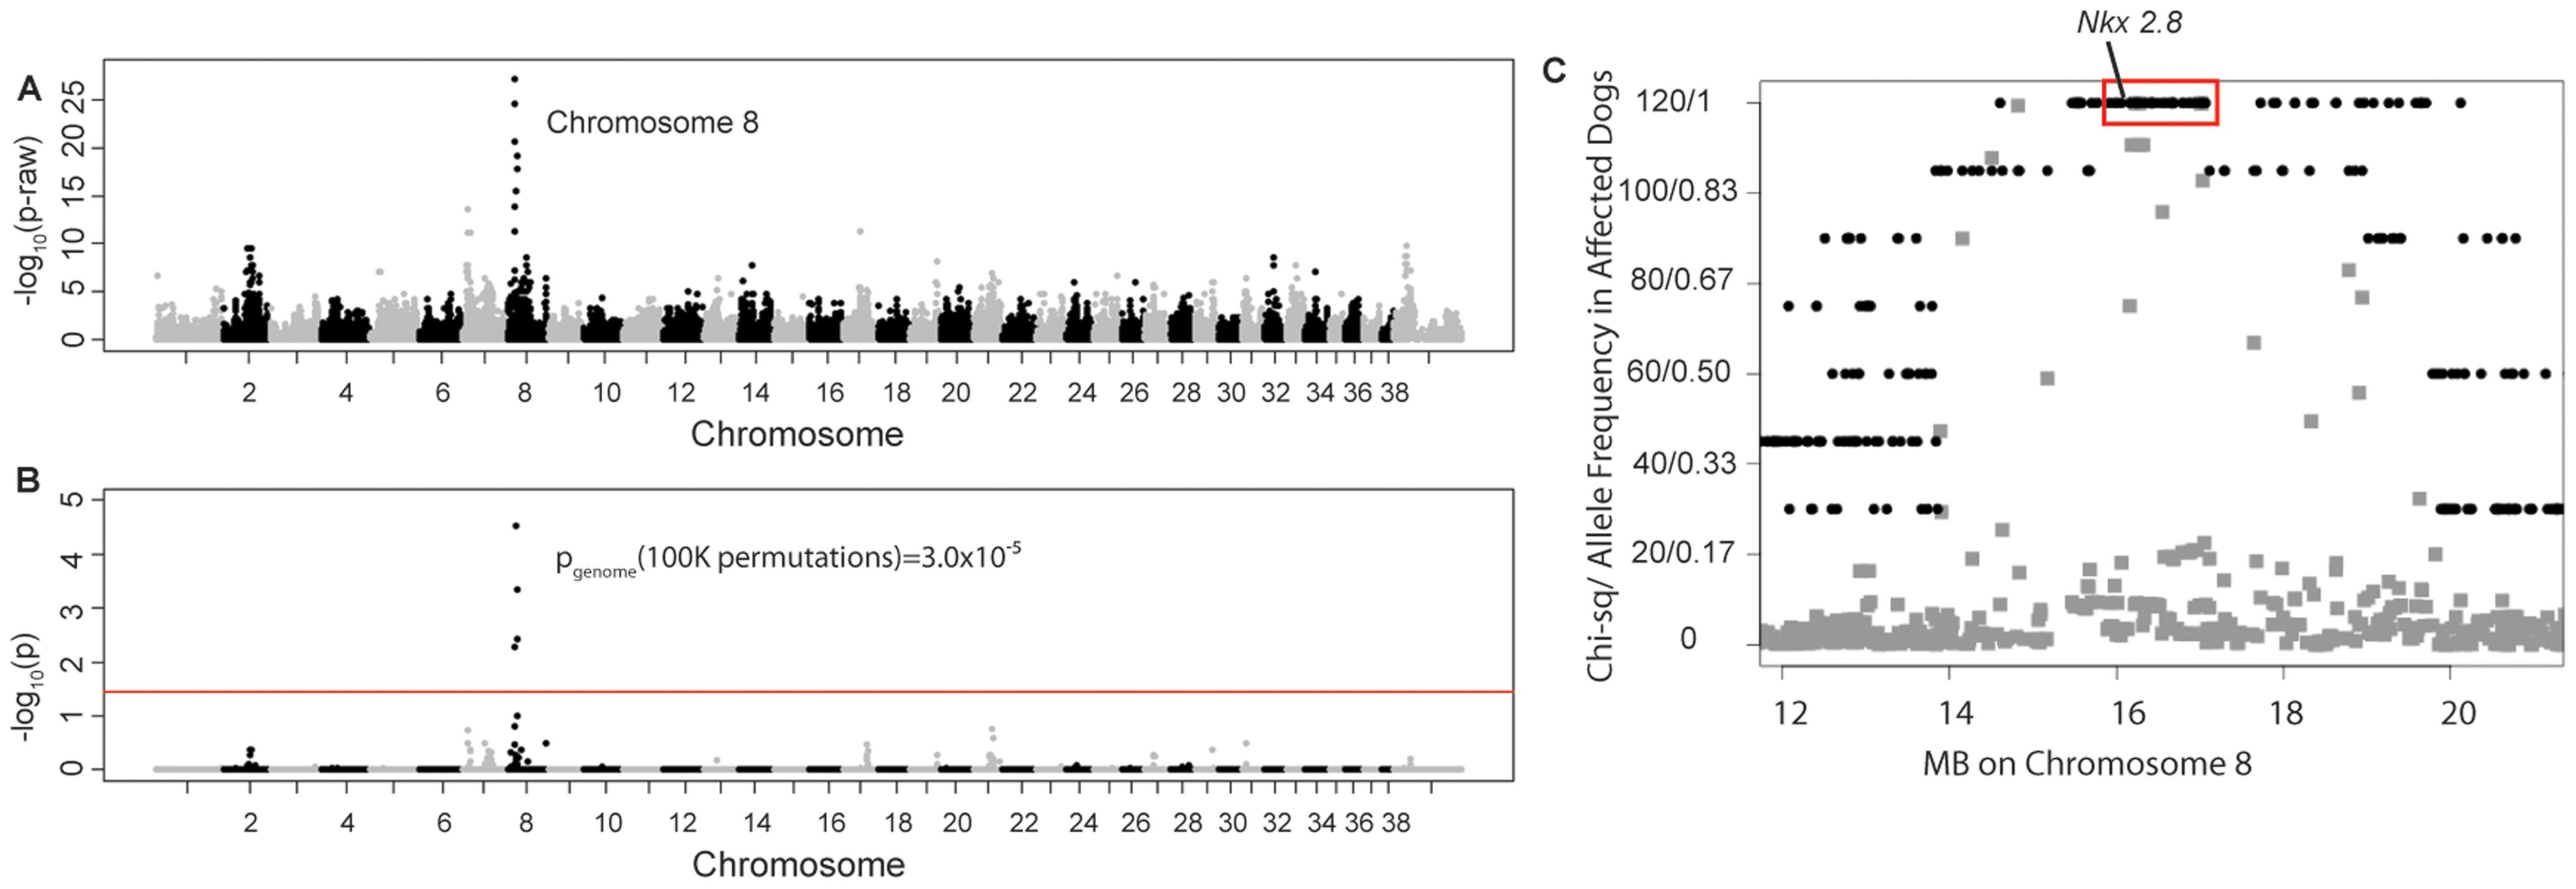 Manhattan plots of GWAS results for NTDs in Weimaraners (4 cases, 96 controls; λ=1.03).